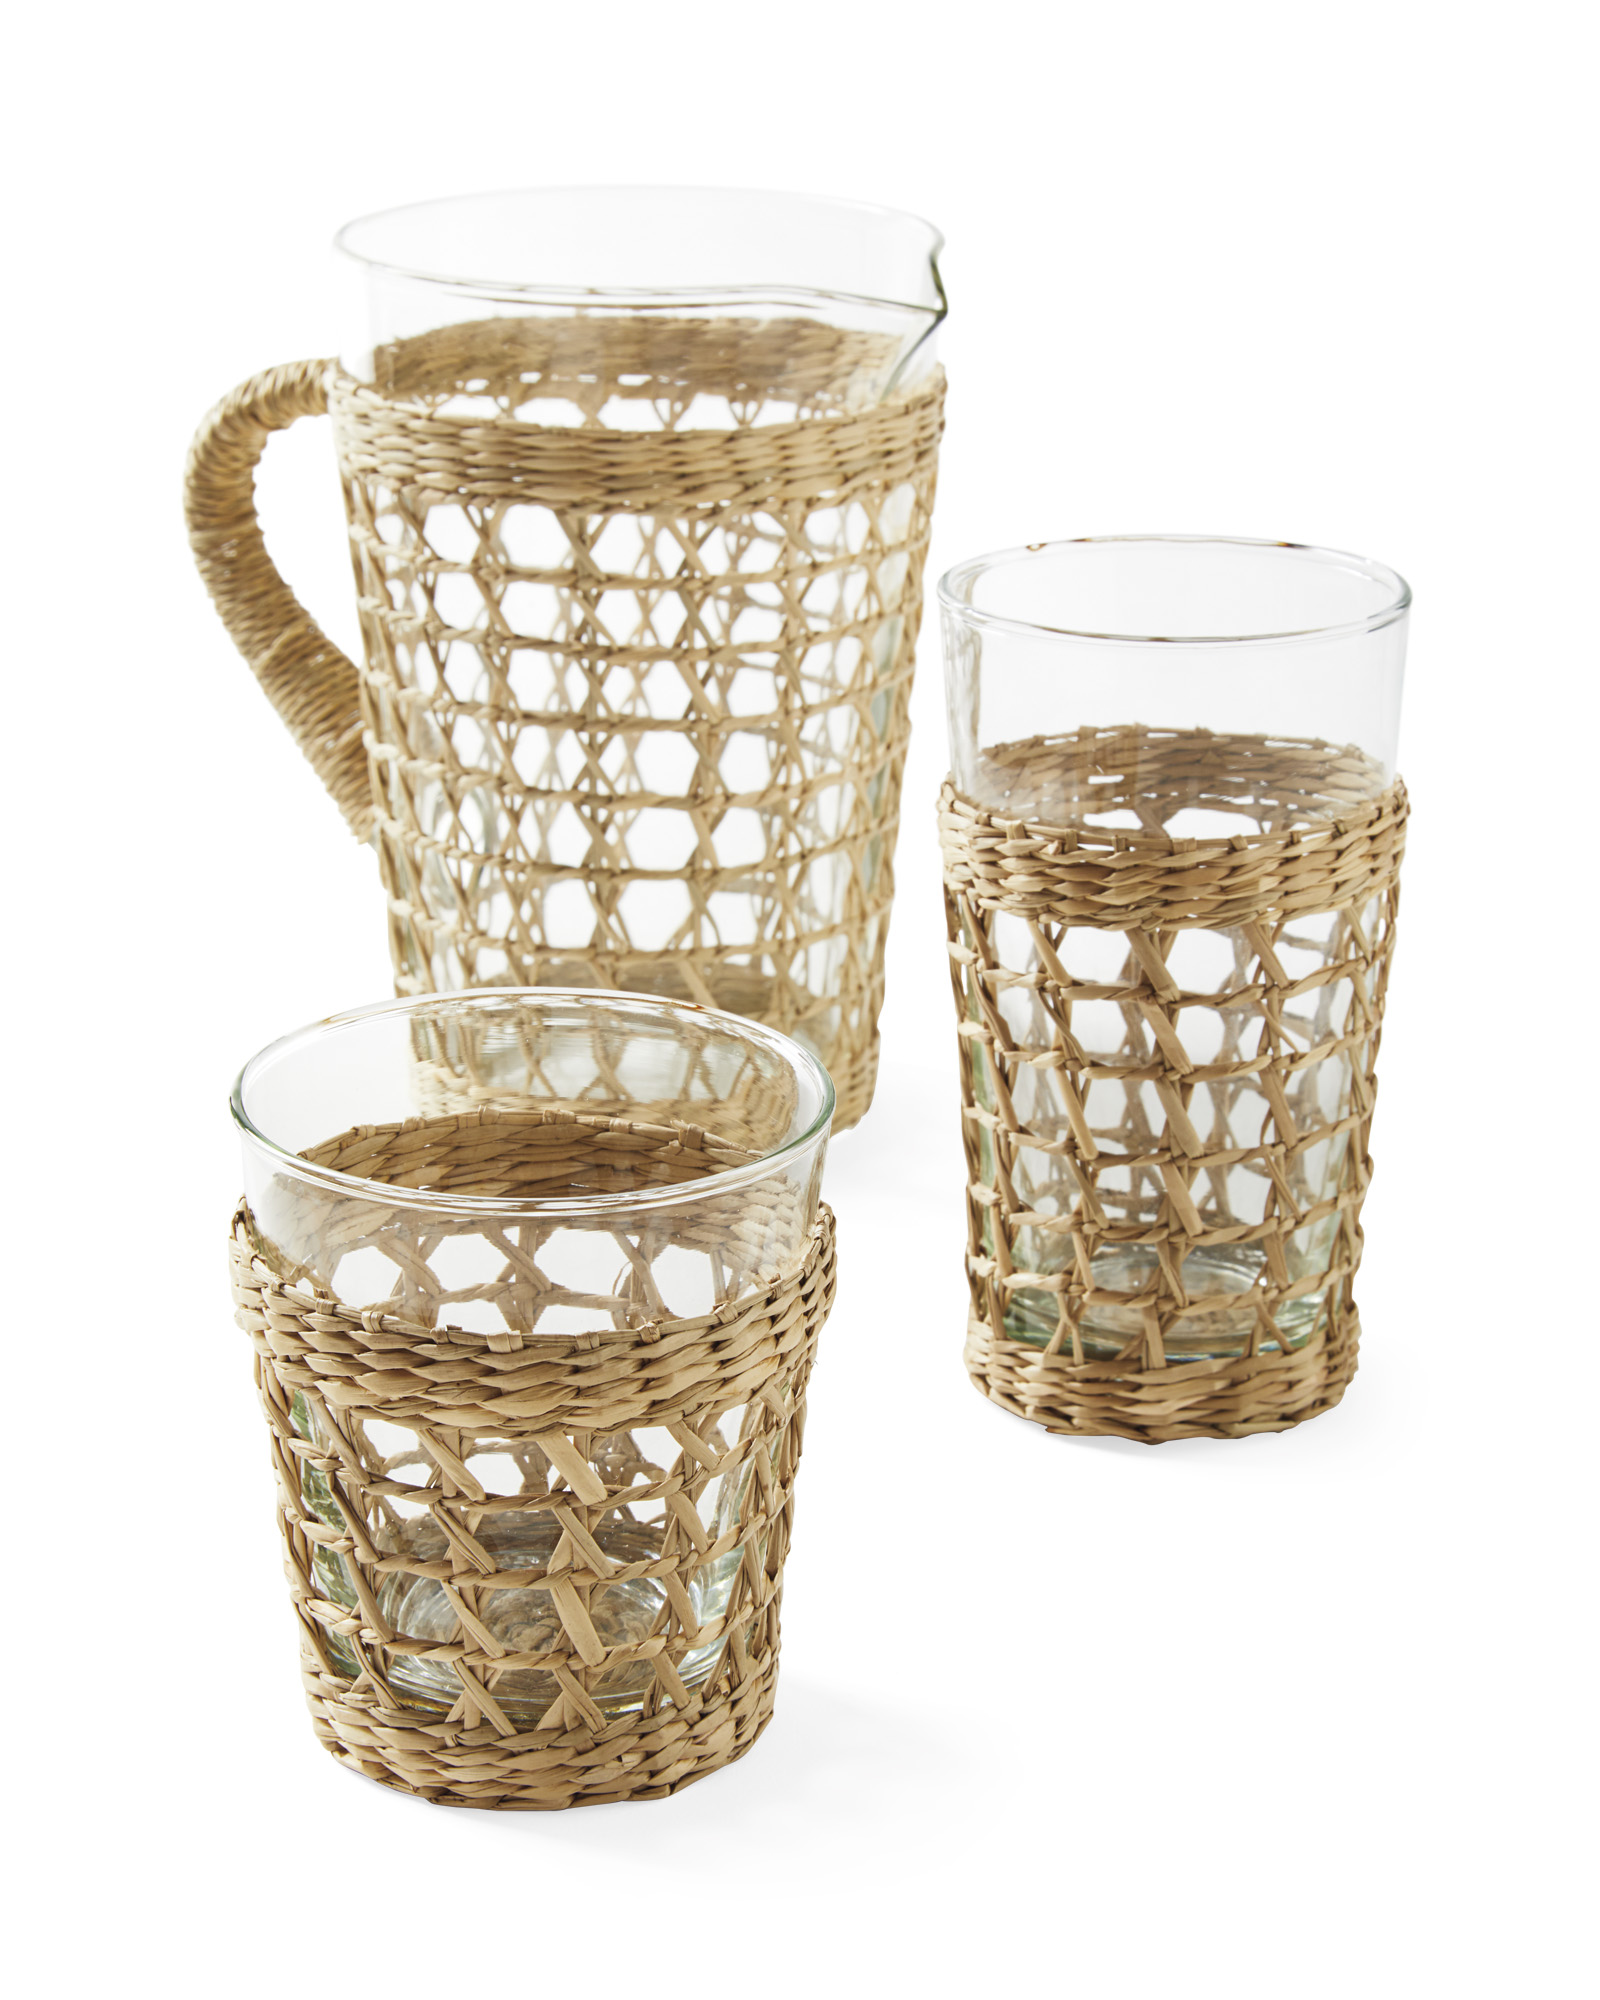 Cayman_Seagrass_Wrapped_Glassware_Family